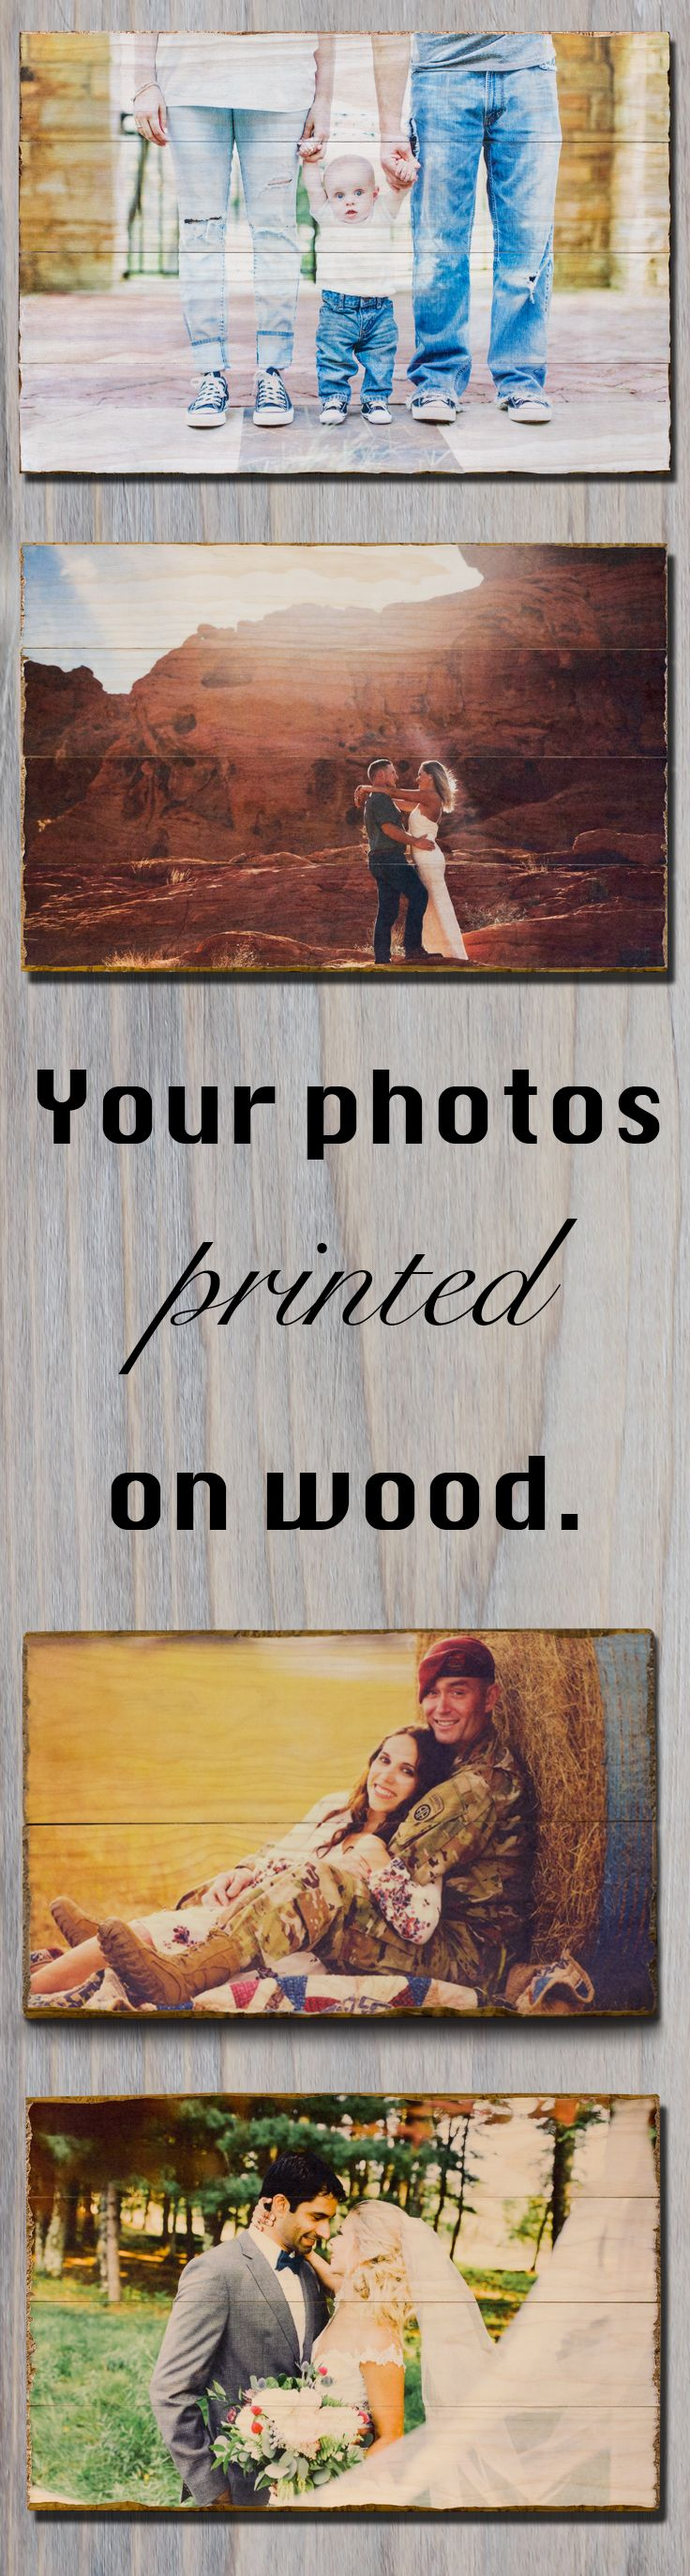 Photo Pallet on Rustic Wood for 5th Anniversary Gifts for